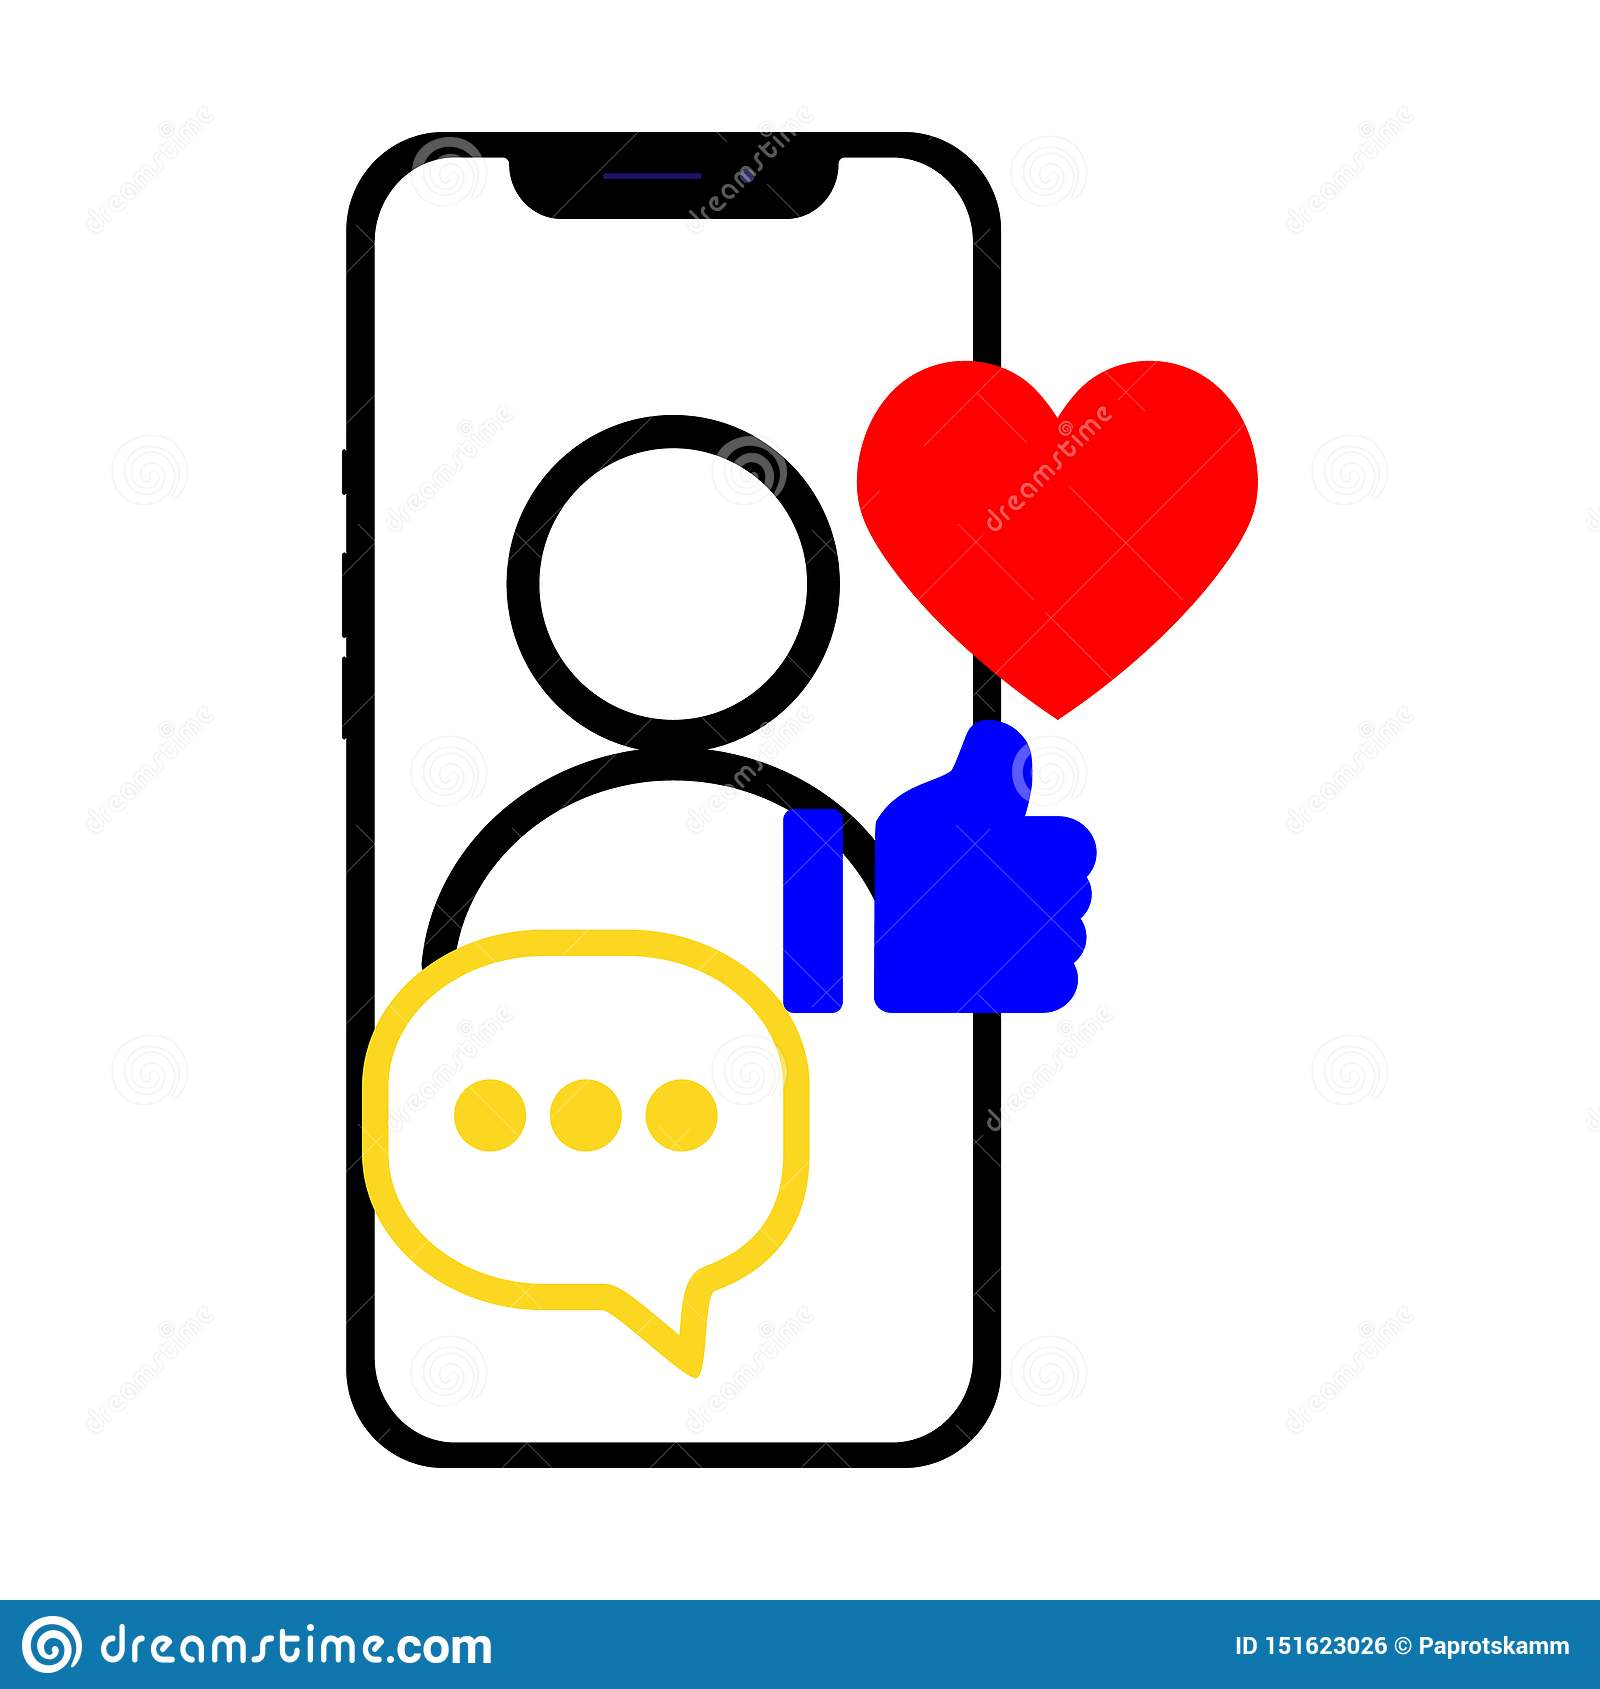 Smartphone with social media related icons over the screen. Flat vector illustration for the web site, app, banner.